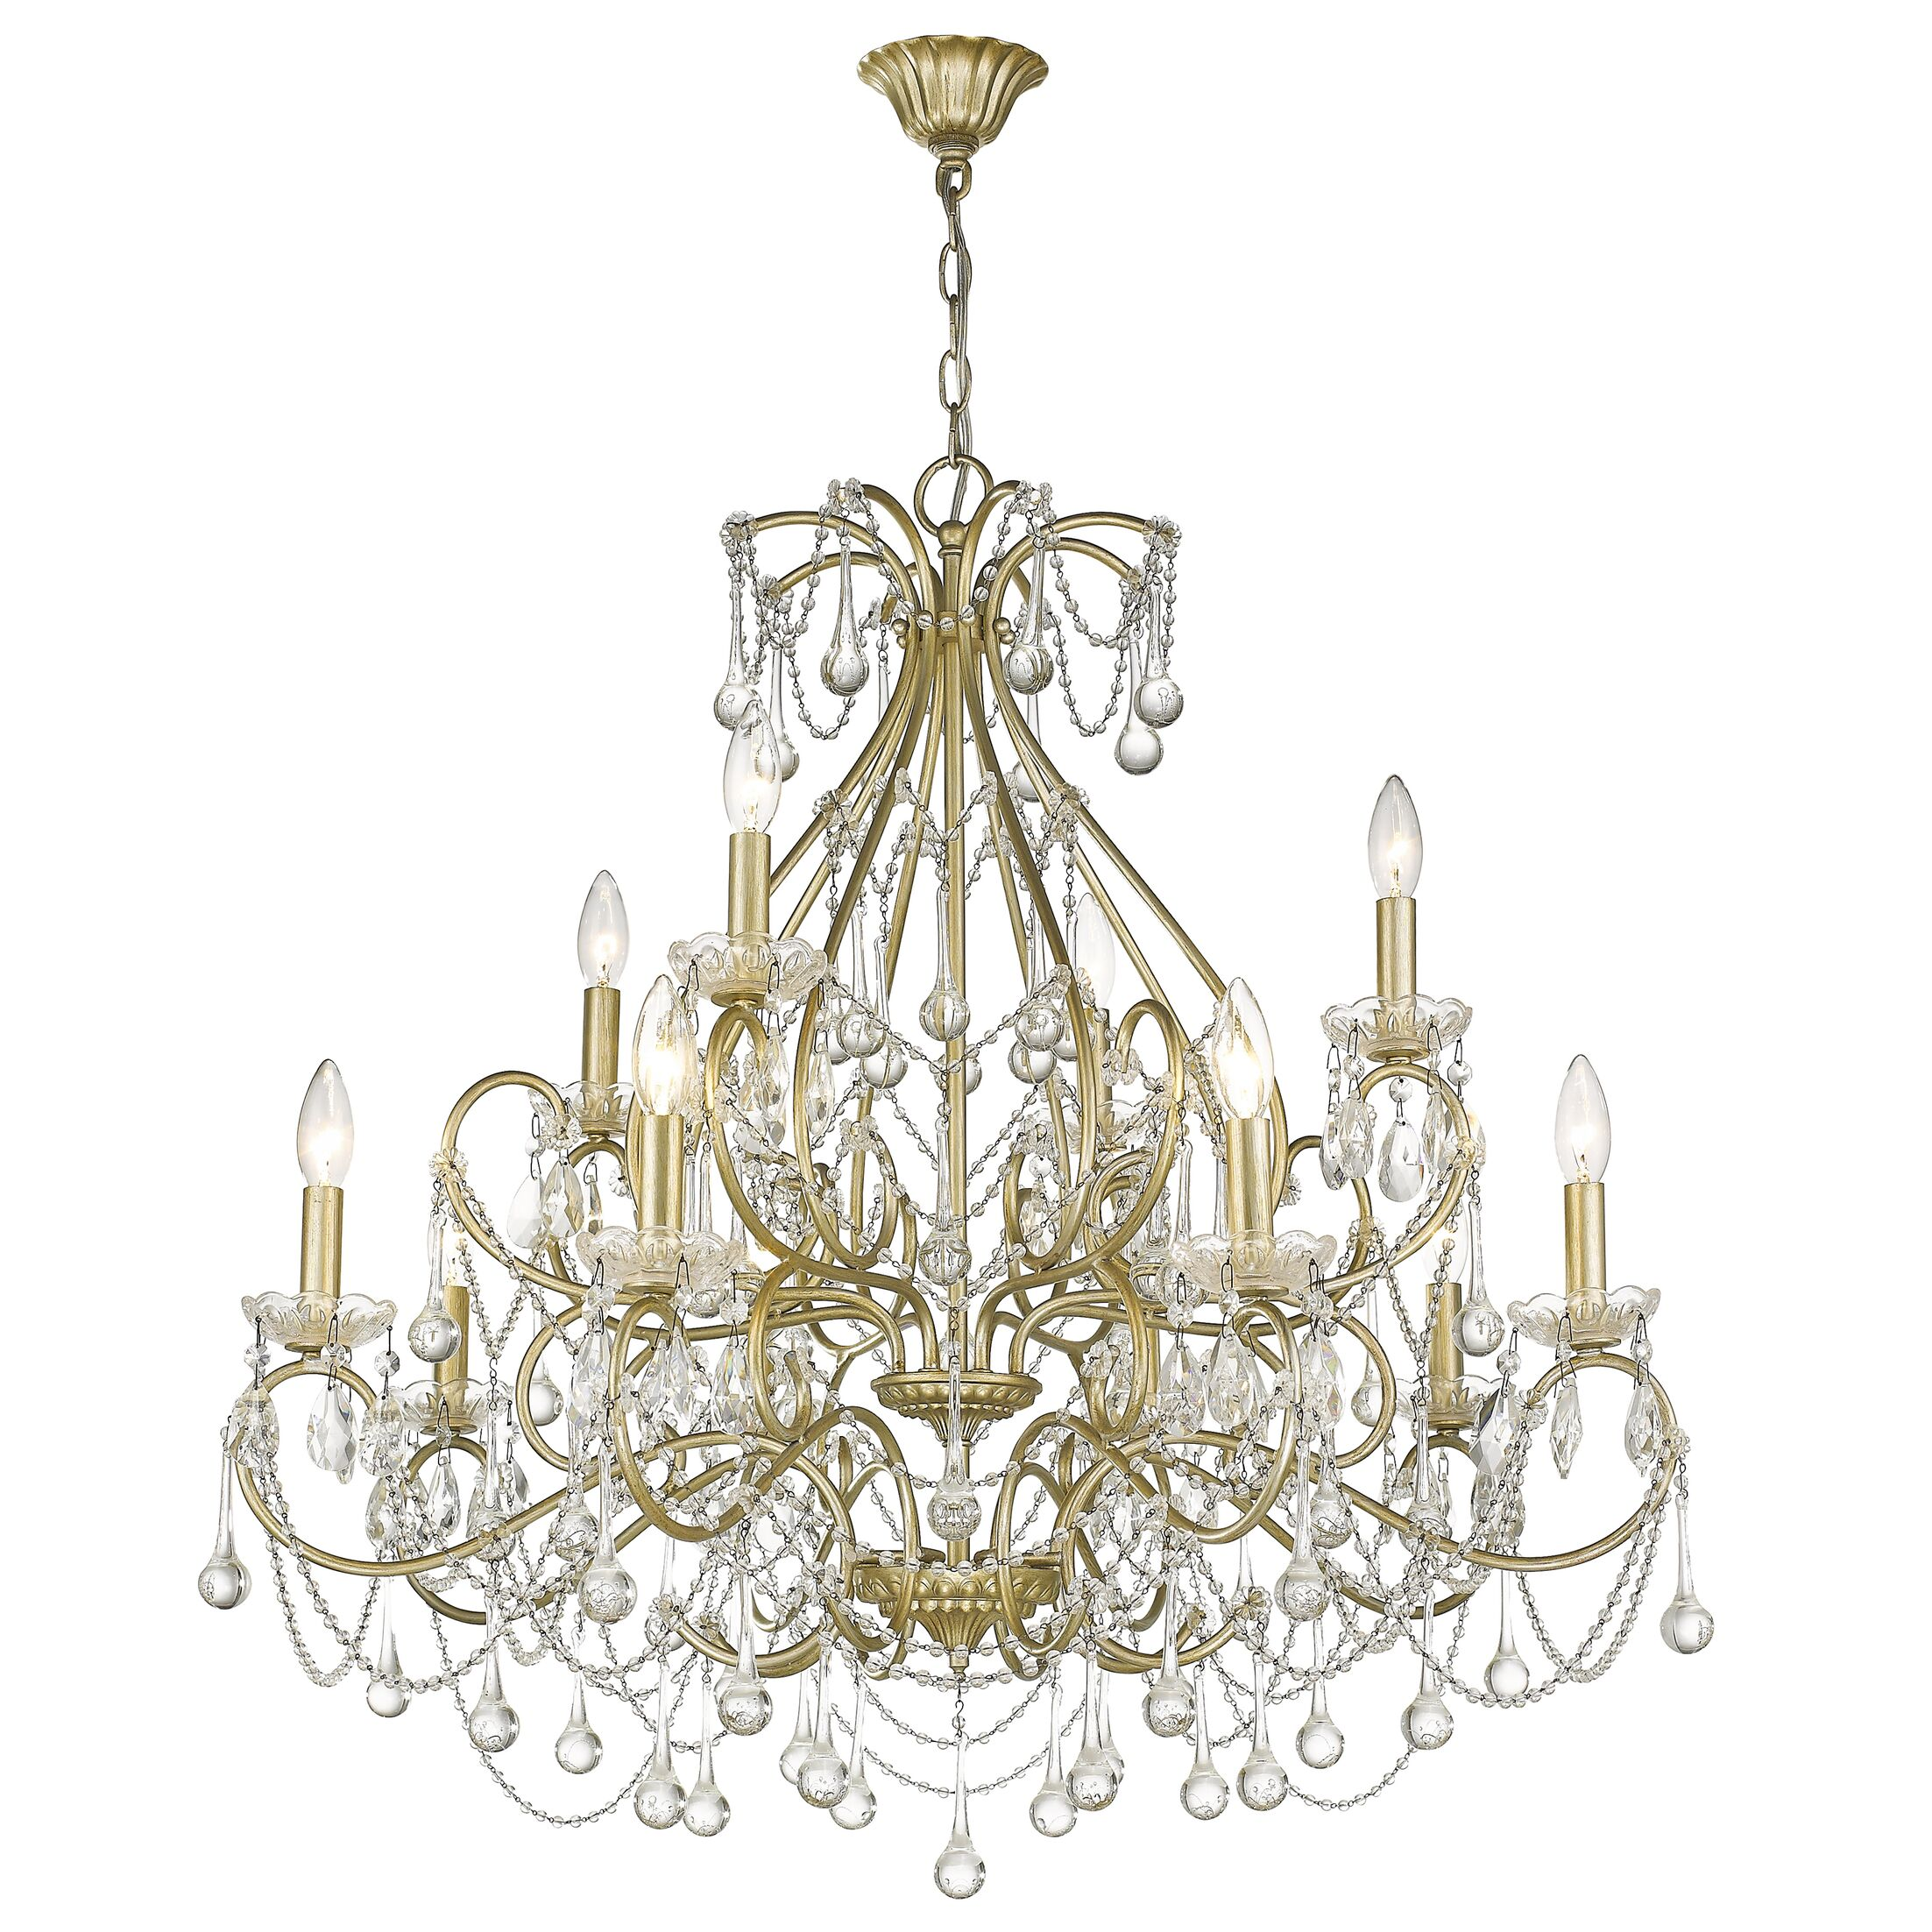 Frey 12-Light Candle Style Chandelier